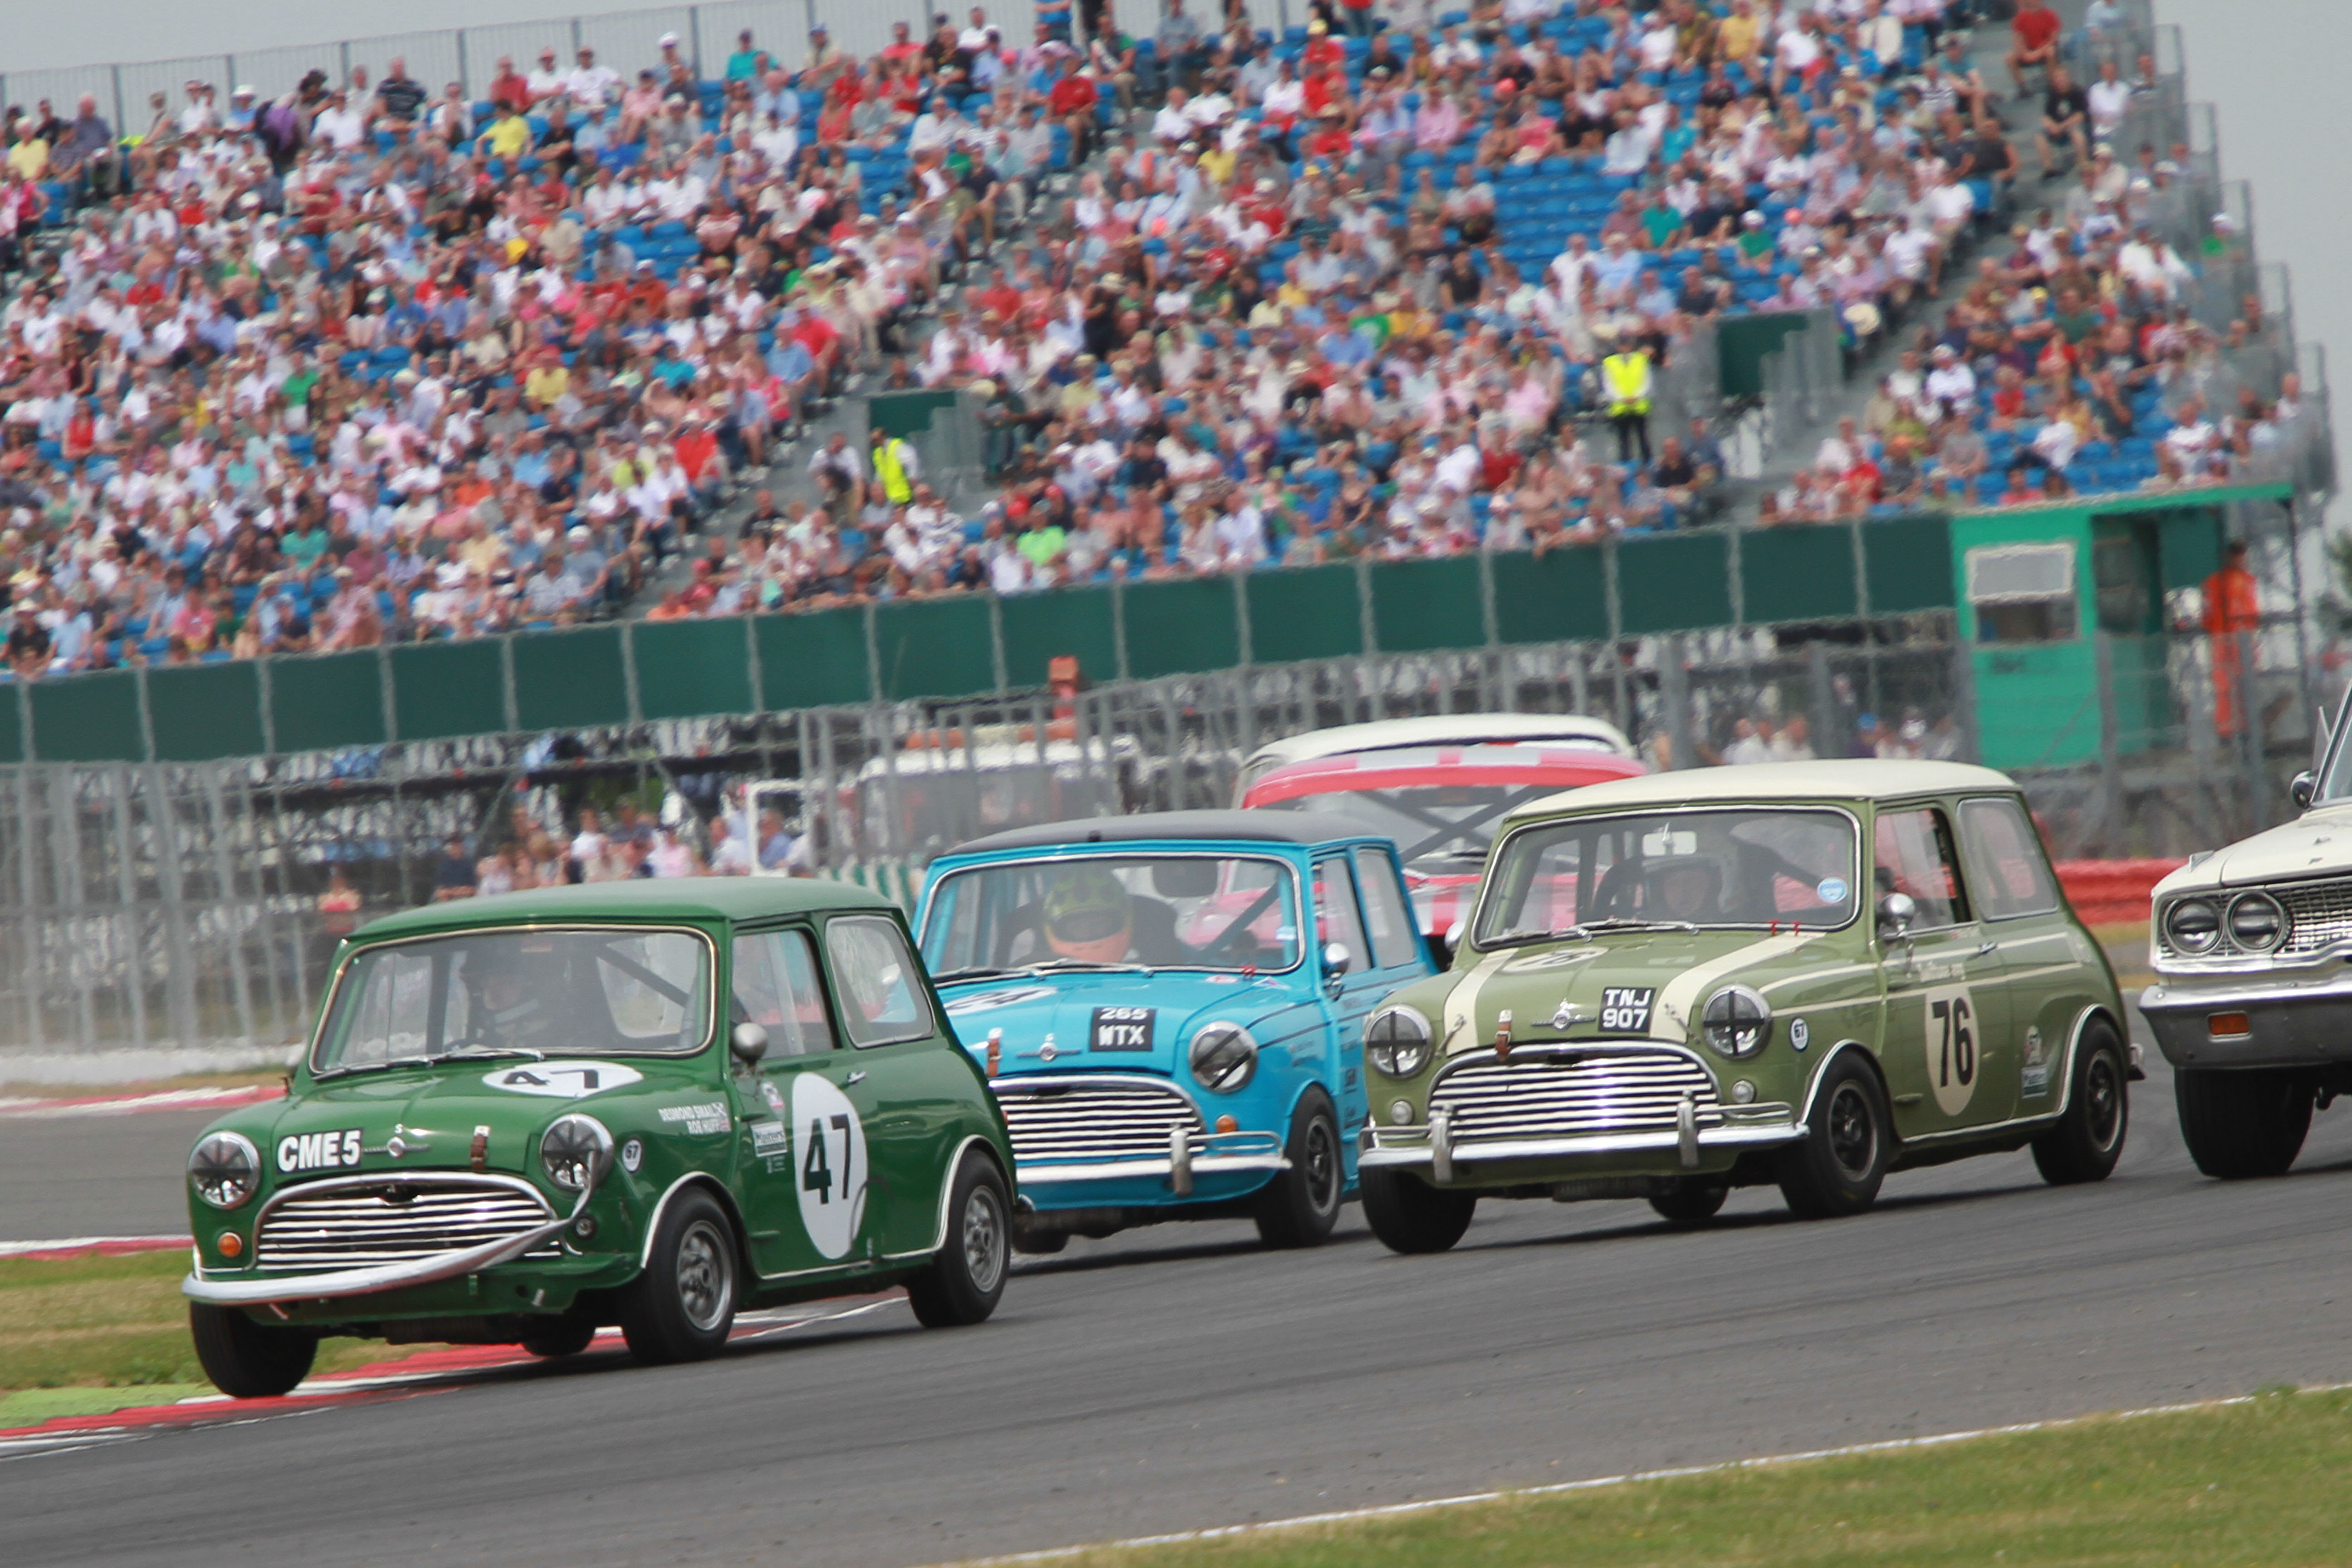 MInis Racing at the Silverstone Classic